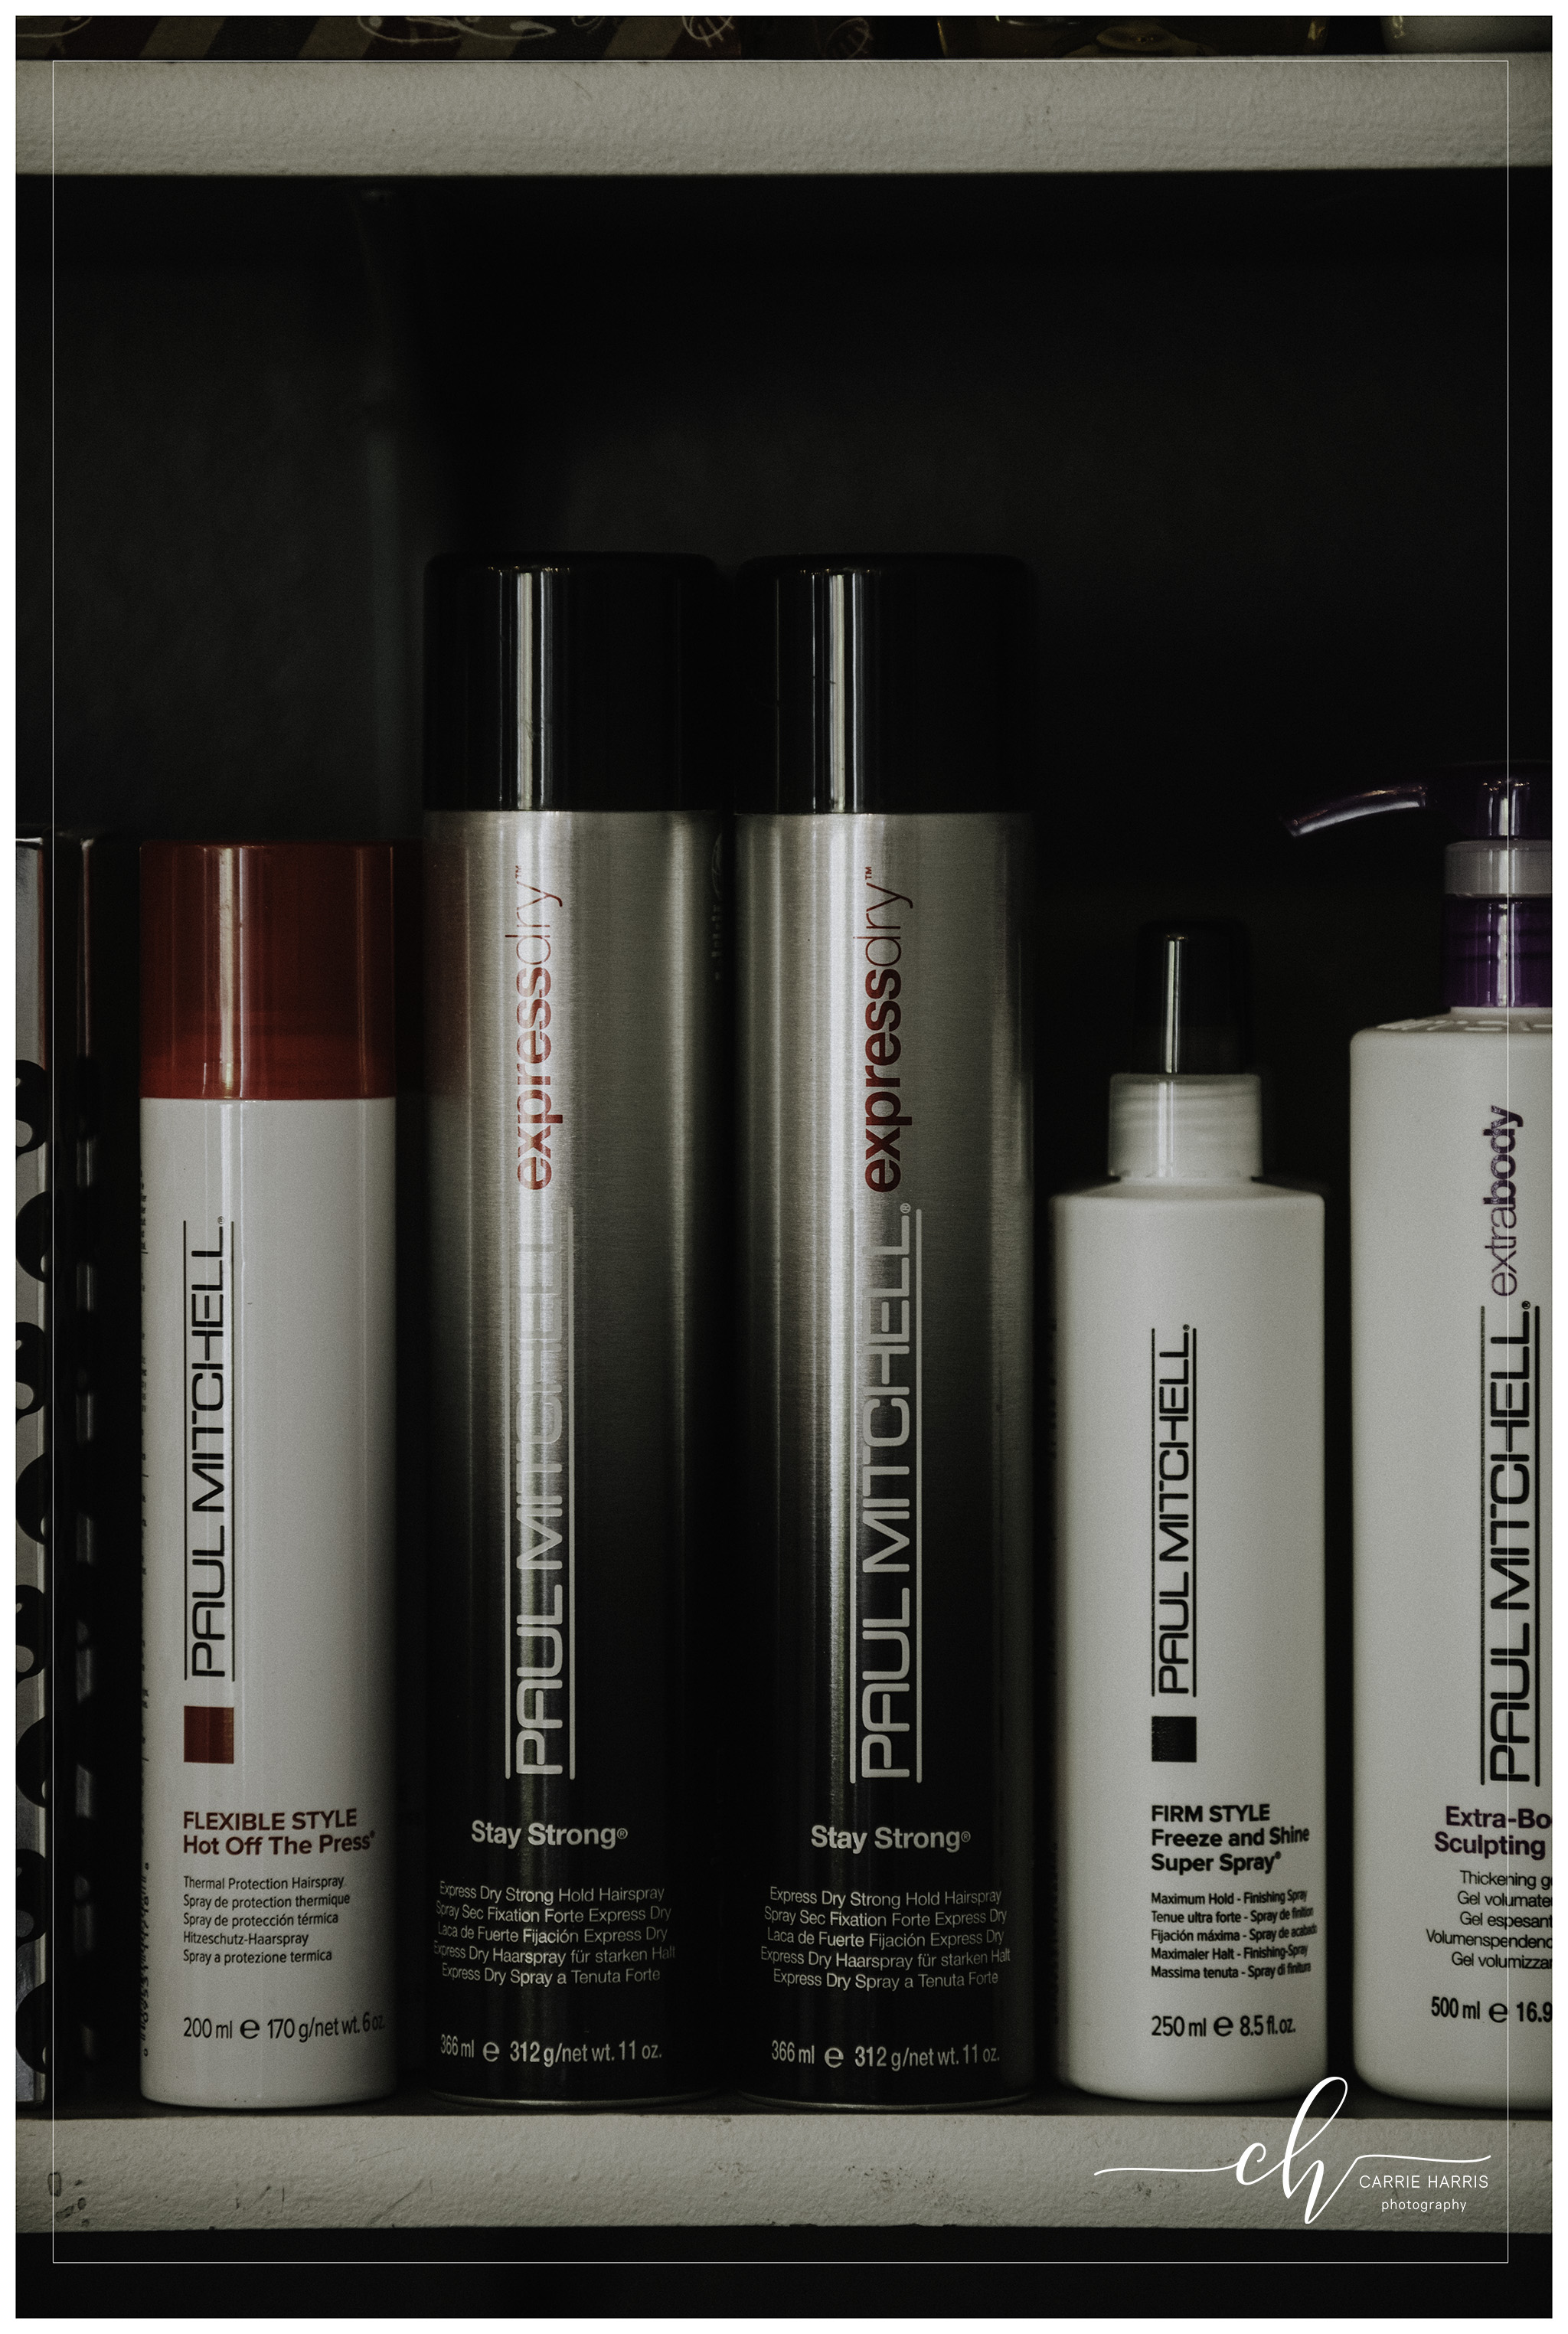 I learned that my beloved Paul Mitchell Express Dry hairspray may not be the best choice on portrait day. You'll want a lighter hairspray that can be layered and won't pull your hair down. We don't want flat hair in your photos!